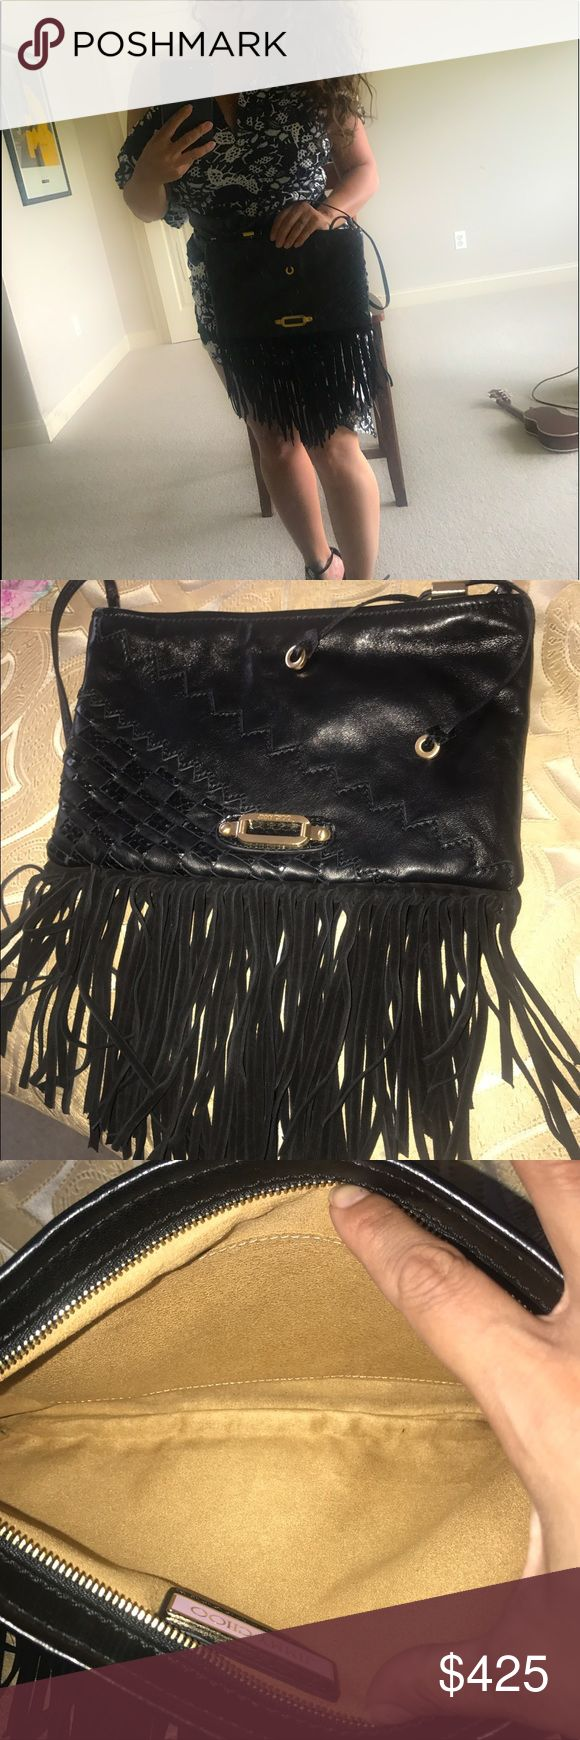 Jimmy choo leather clutch bag purse shoulder top Jimmy choo lamb/snakeskin leather clutch with strap ❤️❤️ softest leather ever!!!  ❤️ used about 6-7 times .. . Some scratches on hardware but very good condition overall ❤️❤️ perfect for your favorite makeup, cellphone and favorite accessories ❤️❤️ no dustbag or authenticity cards but 100 percent authentic guaranteed.. I barely use it anymore..this beauty deserves to be enjoyed ❤️:) paid $950 4-5 years ago ❤️ no trades❤️❤️ Jimmy Choo Bags…